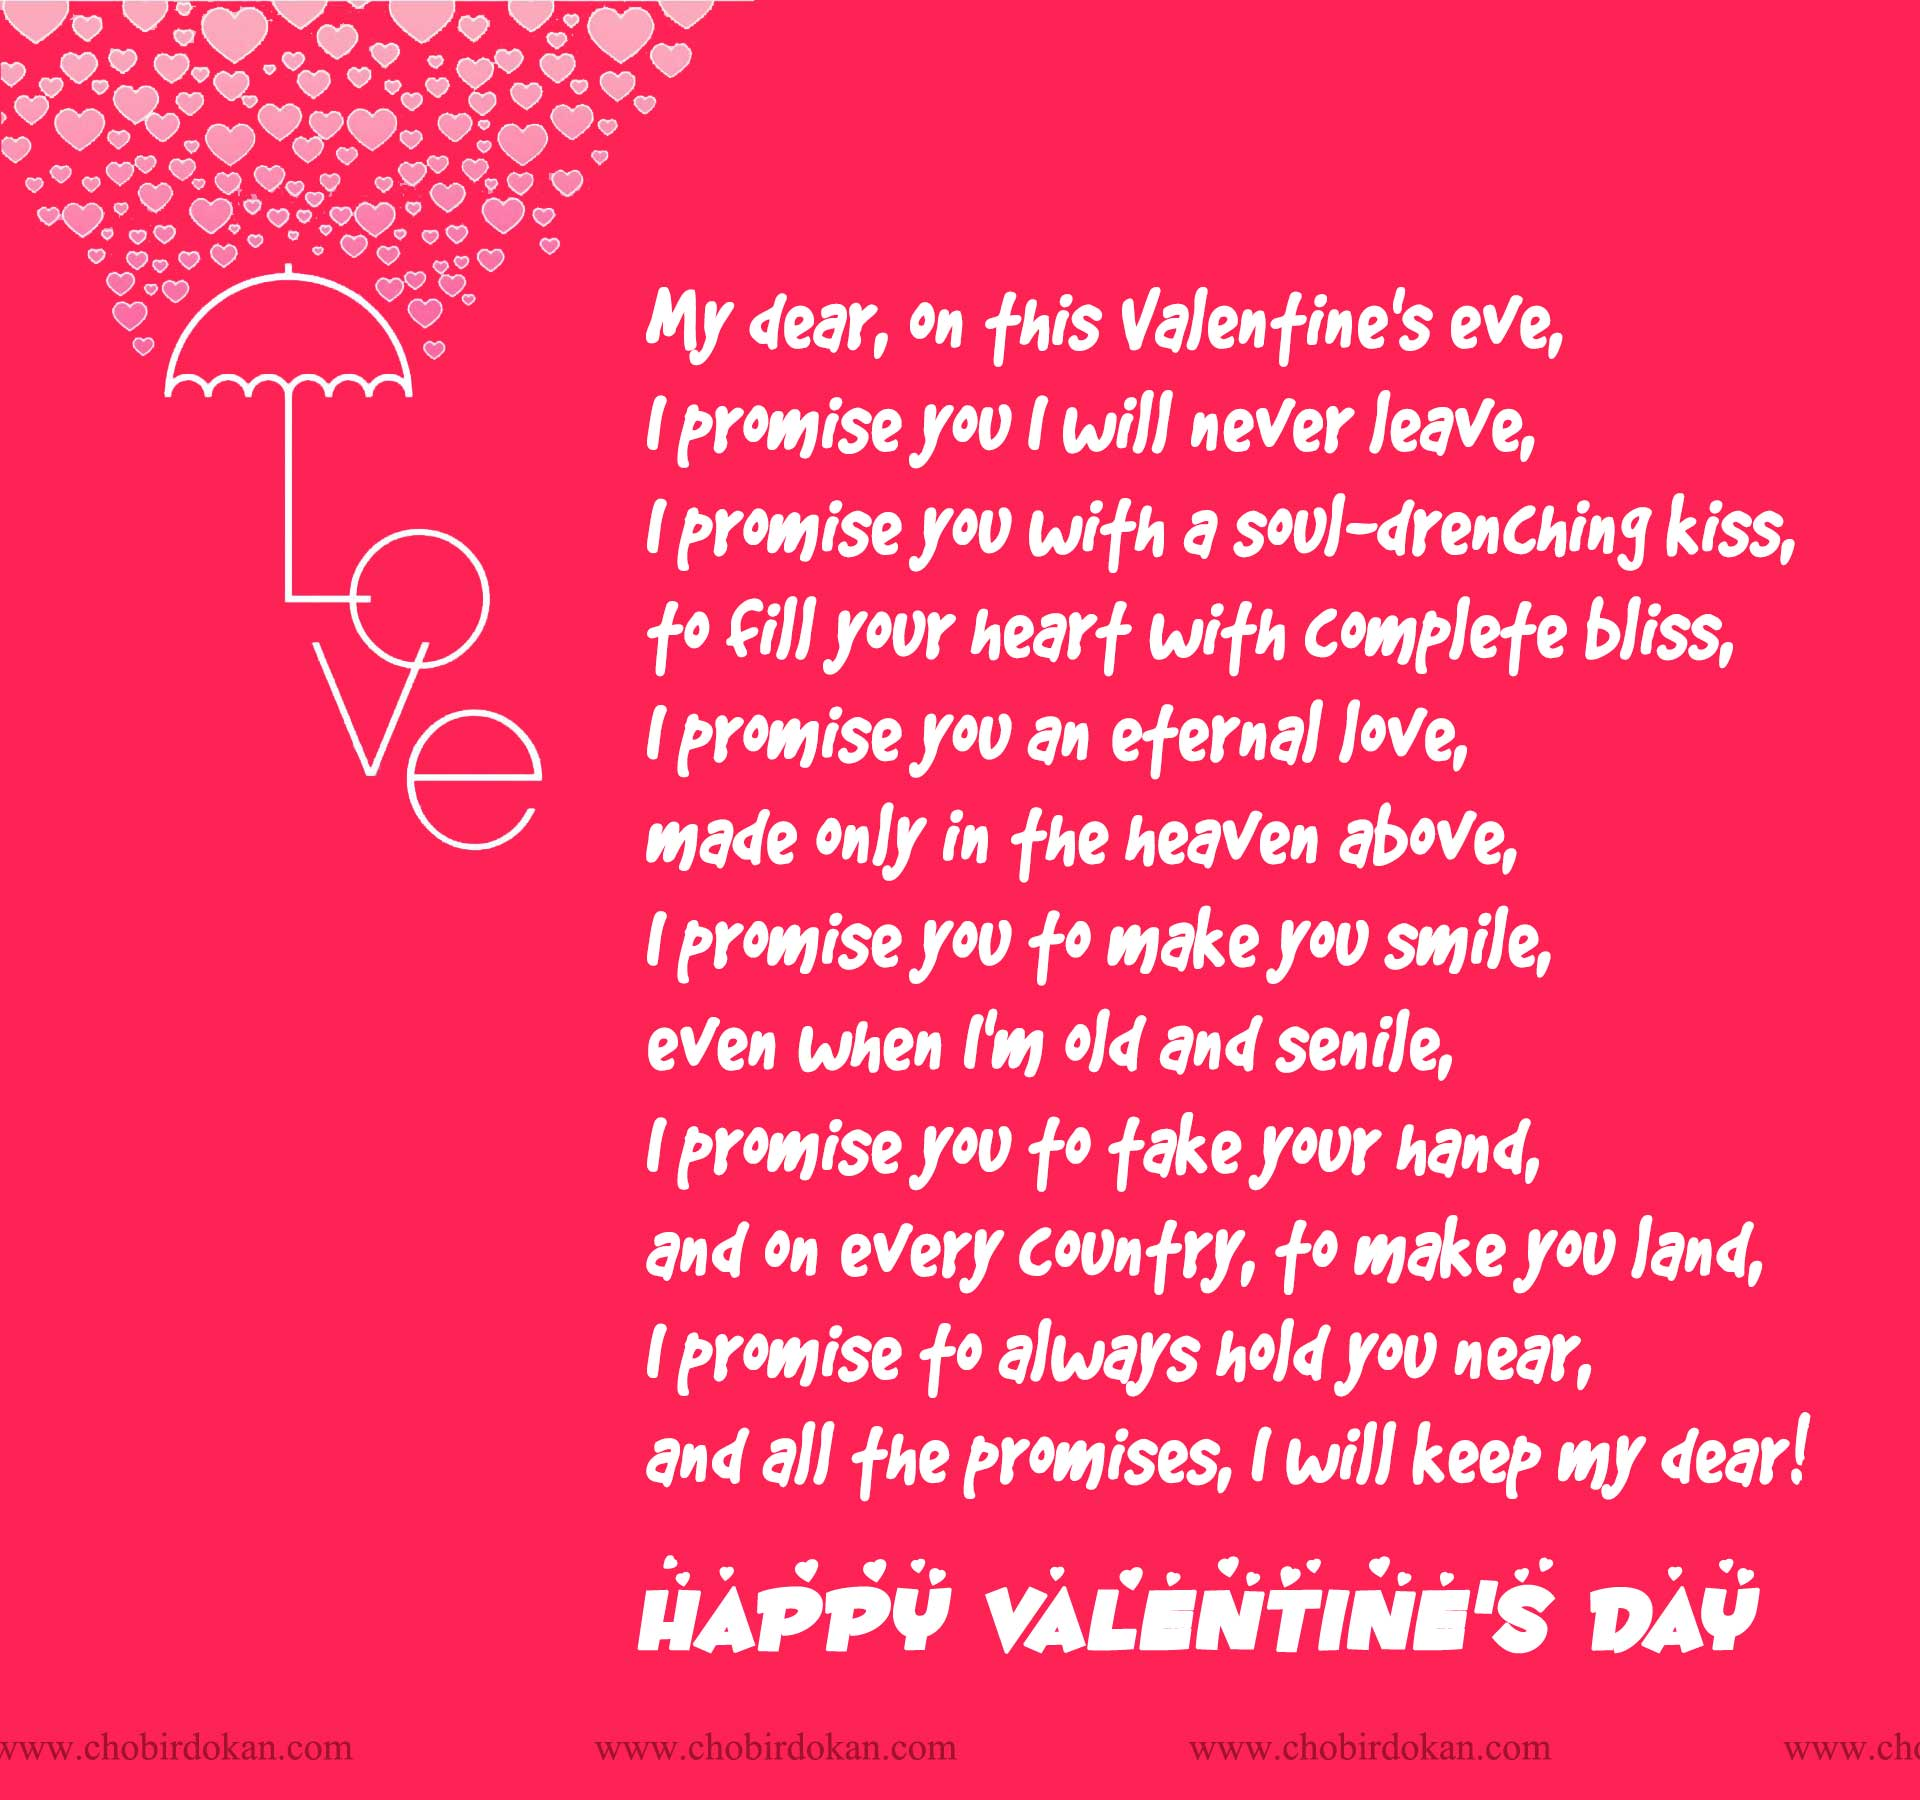 Happy Valentines Day Poems For Her For Your Girlfriend Or